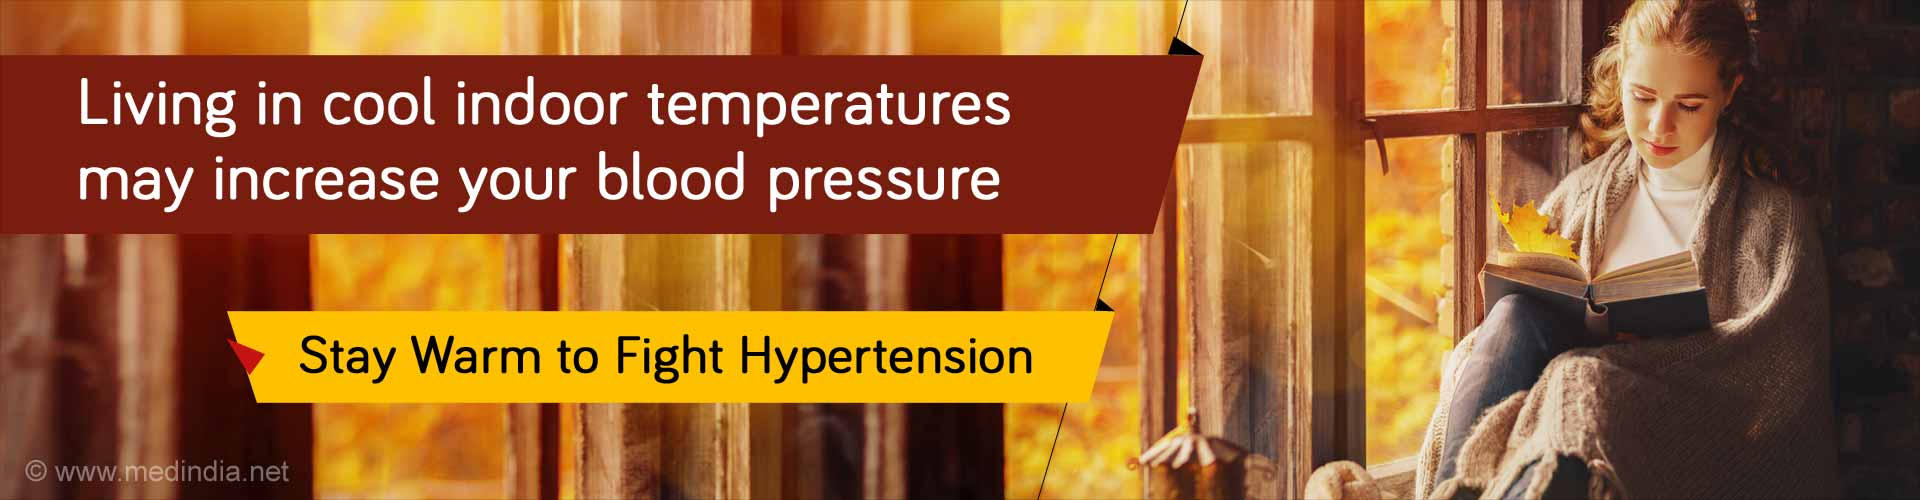 Living in cool indoor temperatures may increase your blood pressure. Stay warm to fight hypertension.